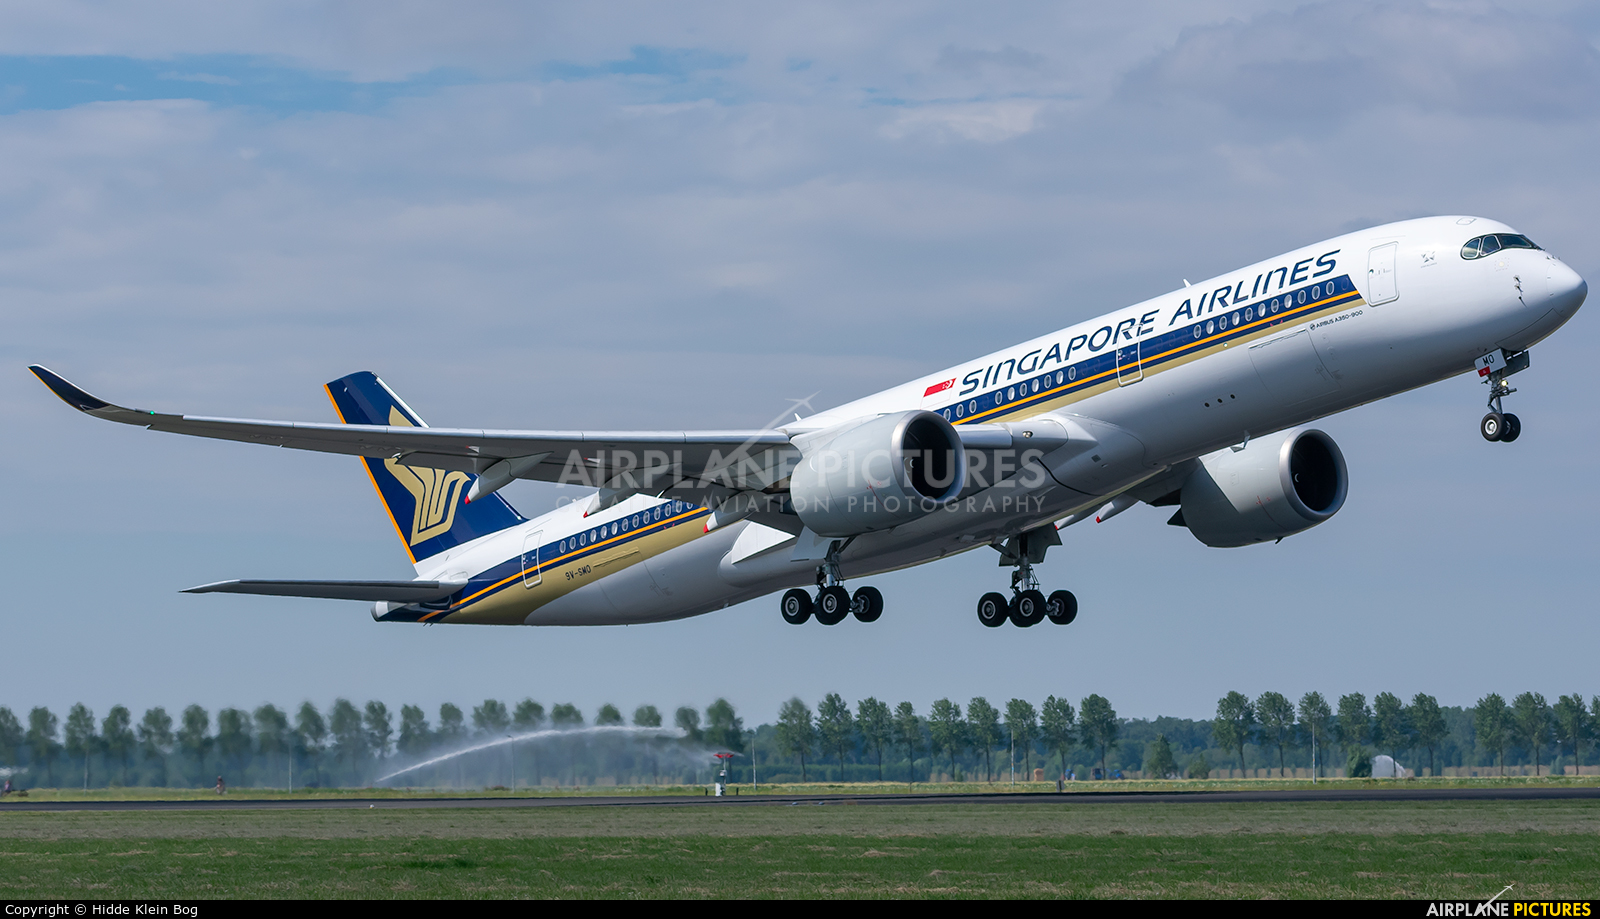 Singapore Airlines 9V-SMO aircraft at Amsterdam - Schiphol